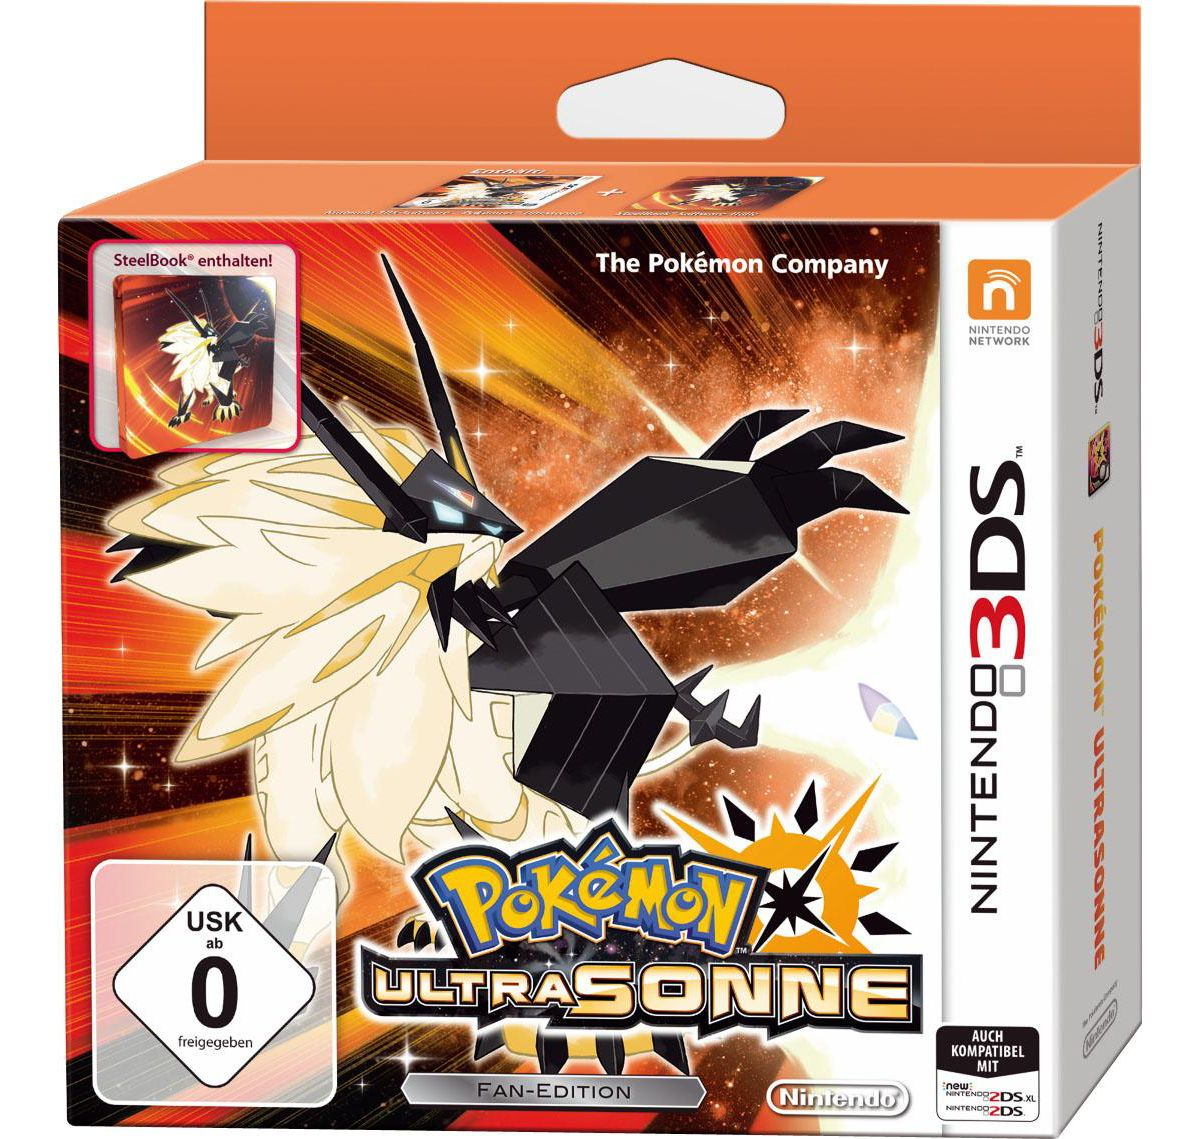 Pokémon Ultrasonne - Fan-Edition Nintendo 3DS